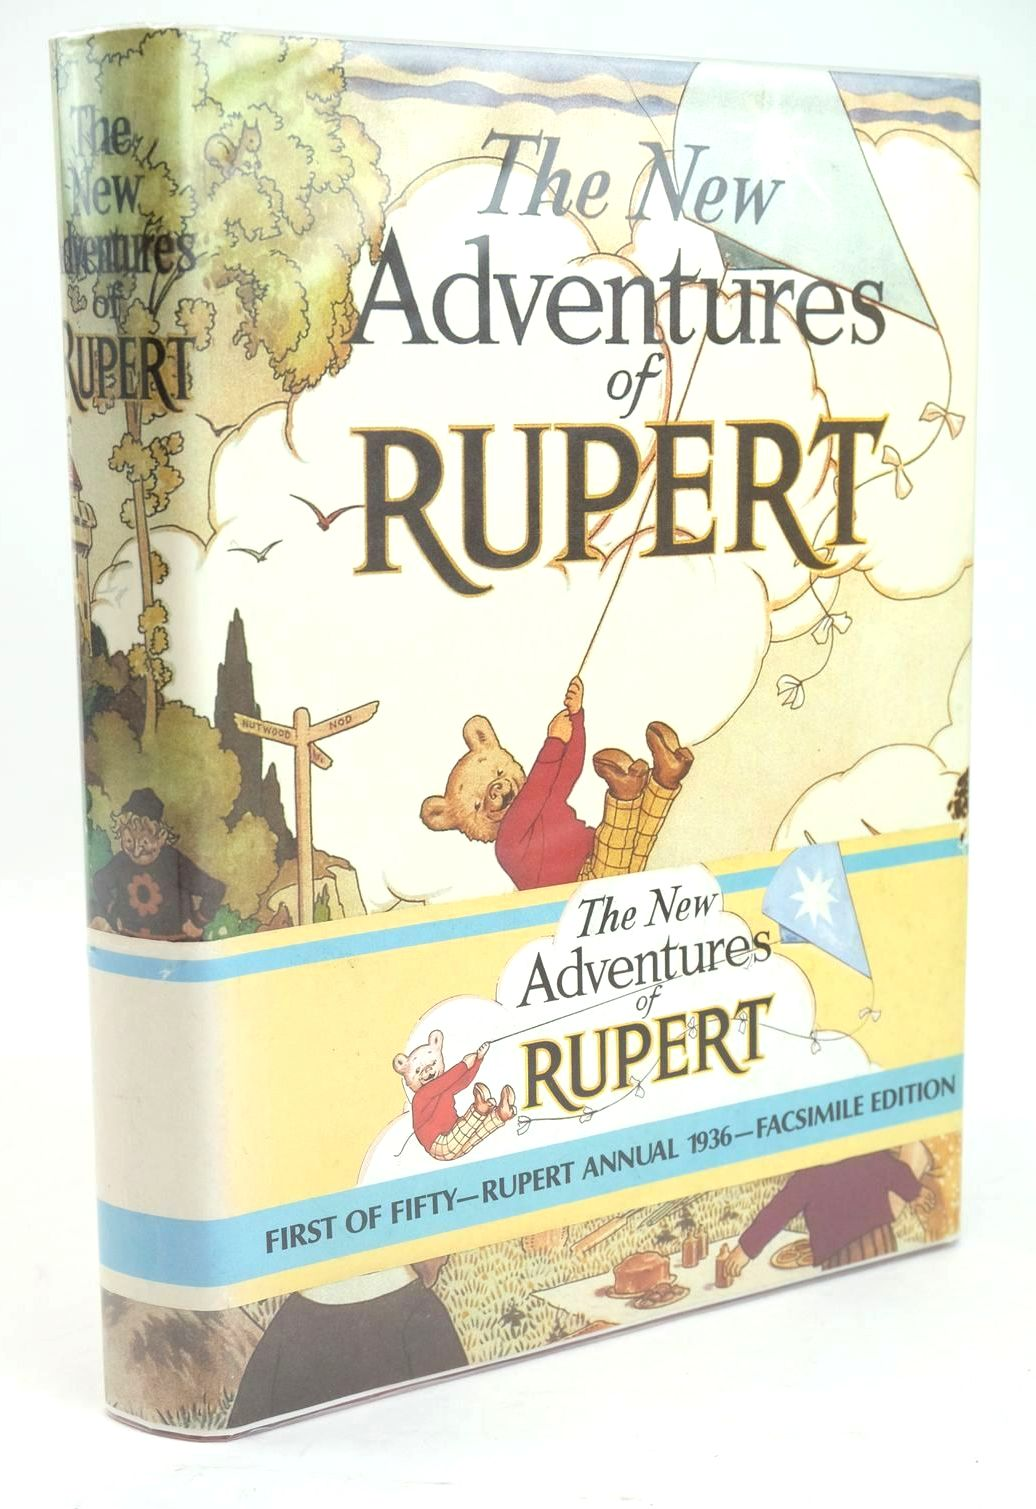 Photo of RUPERT ANNUAL 1936 (FACSIMILE) - THE NEW ADVENTURES OF RUPERT written by Bestall, Alfred illustrated by Bestall, Alfred published by Daily Express (STOCK CODE: 1319499)  for sale by Stella & Rose's Books